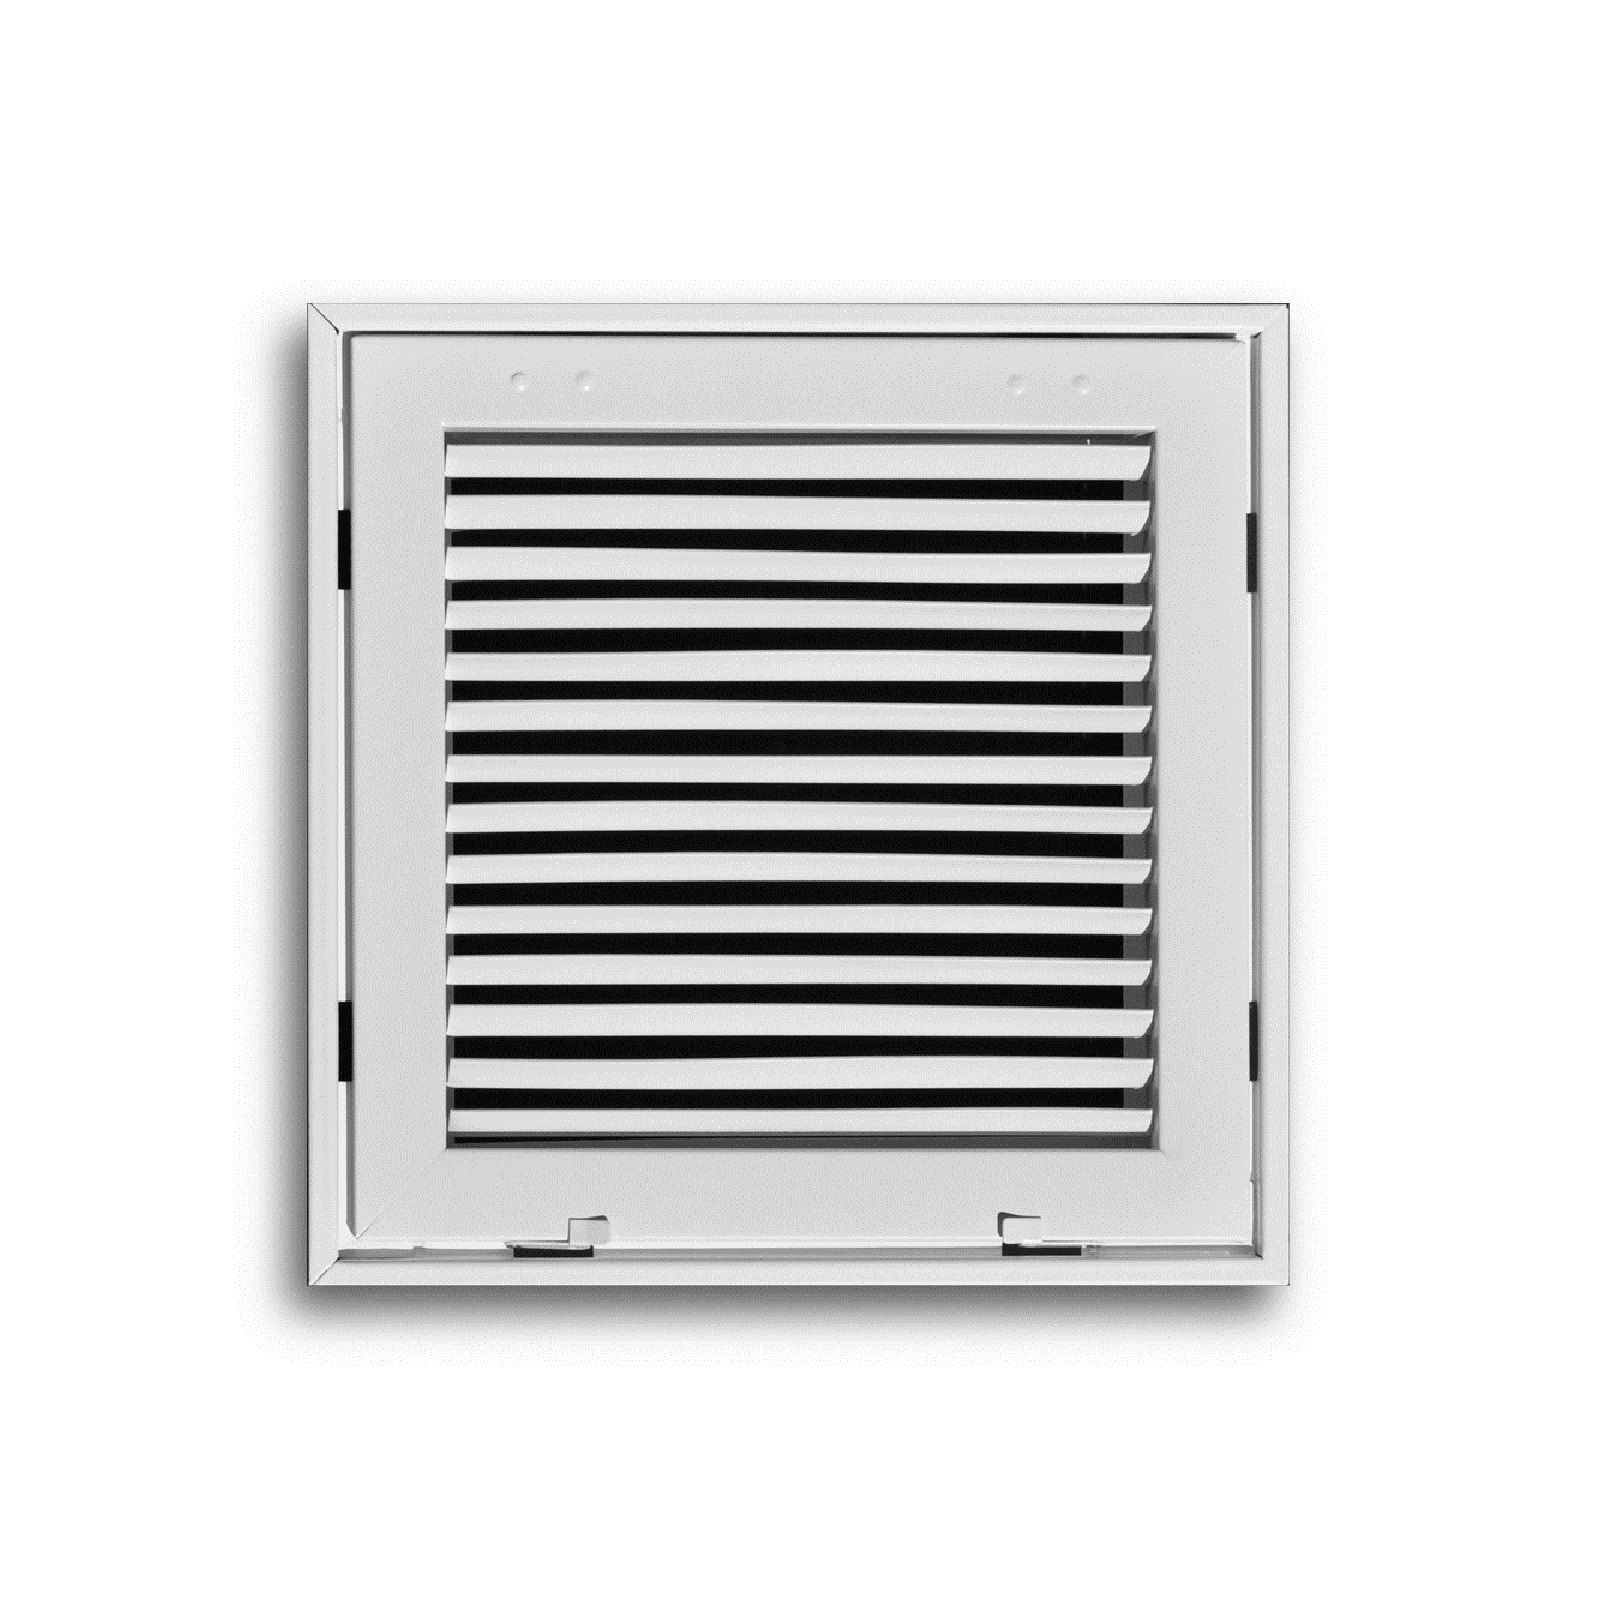 "TRUaire 290 12X10 - Steel Fixed Bar Return Air Filter Grille, White, 12"" X 10"""